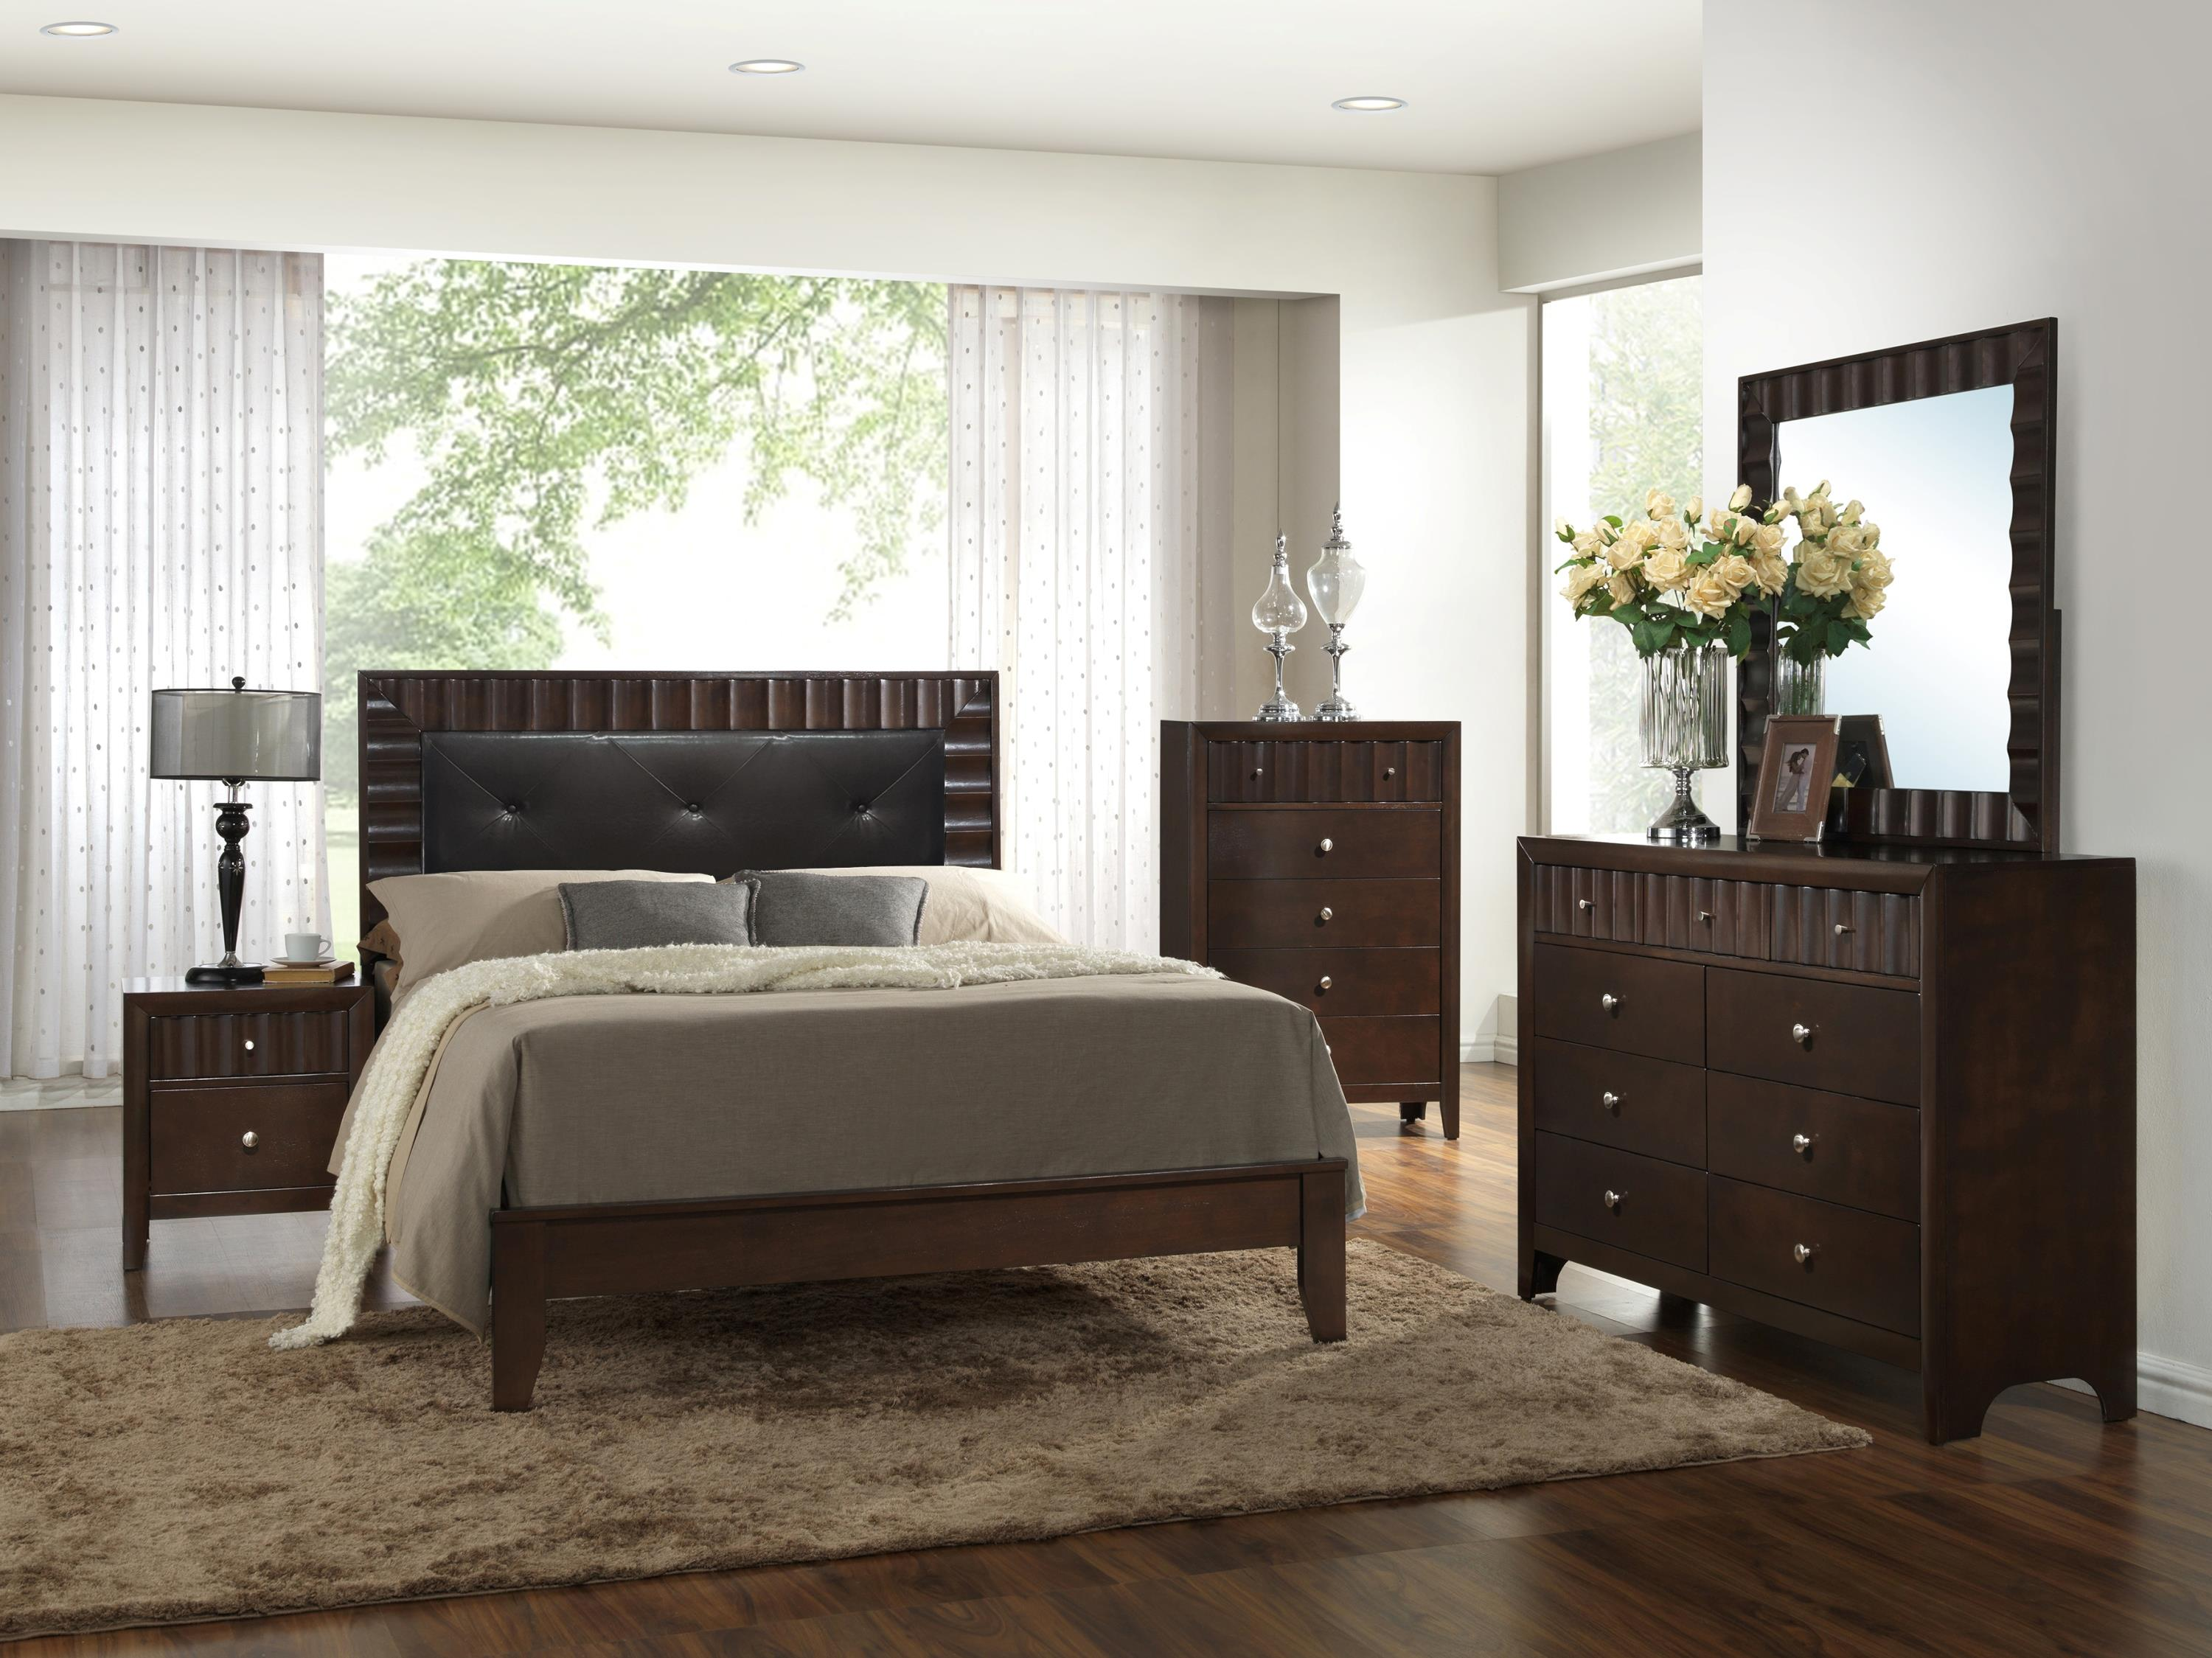 Crown Mark Nadine King Bedroom Group - Item Number: B4900 K Bedroom Group 1